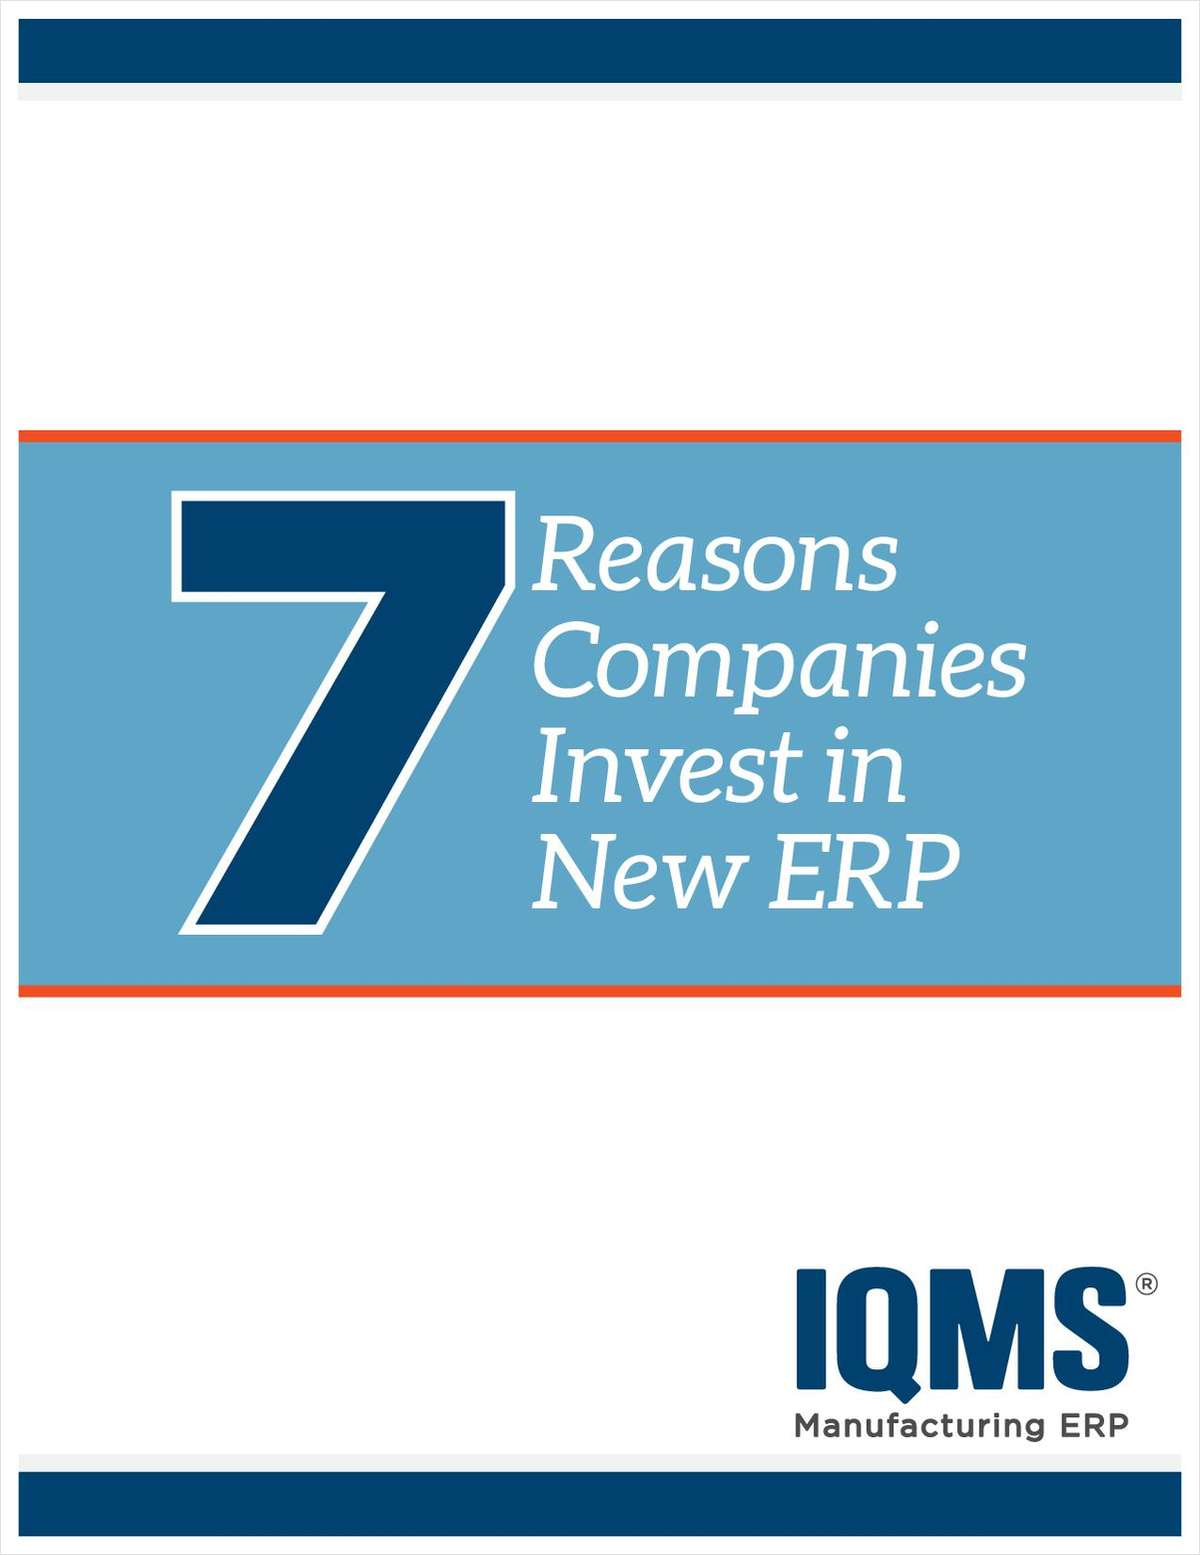 7 Reasons Companies Invest in New ERP